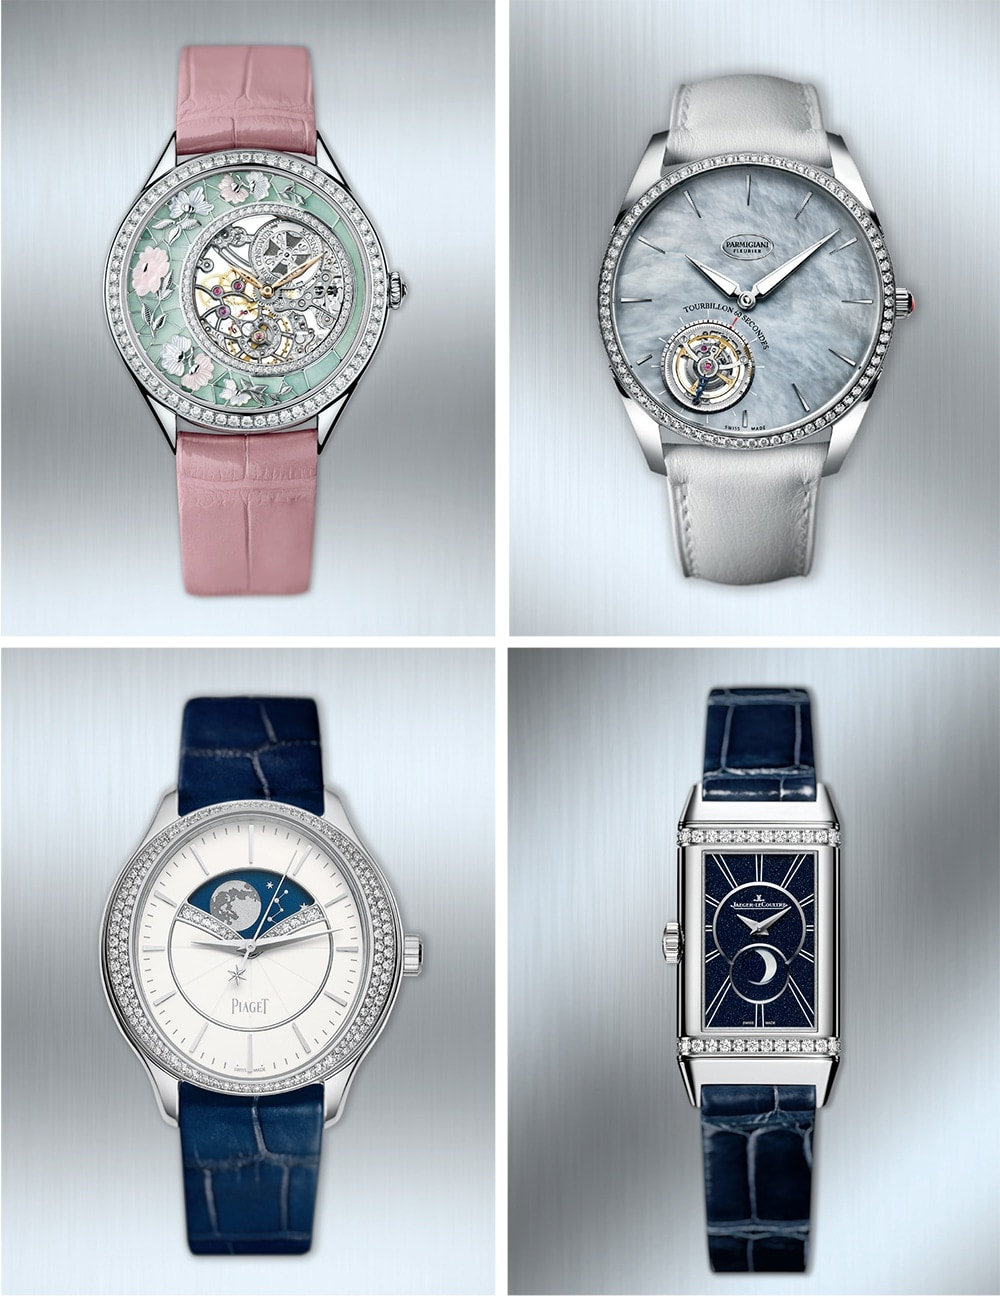 watches-2.jpg